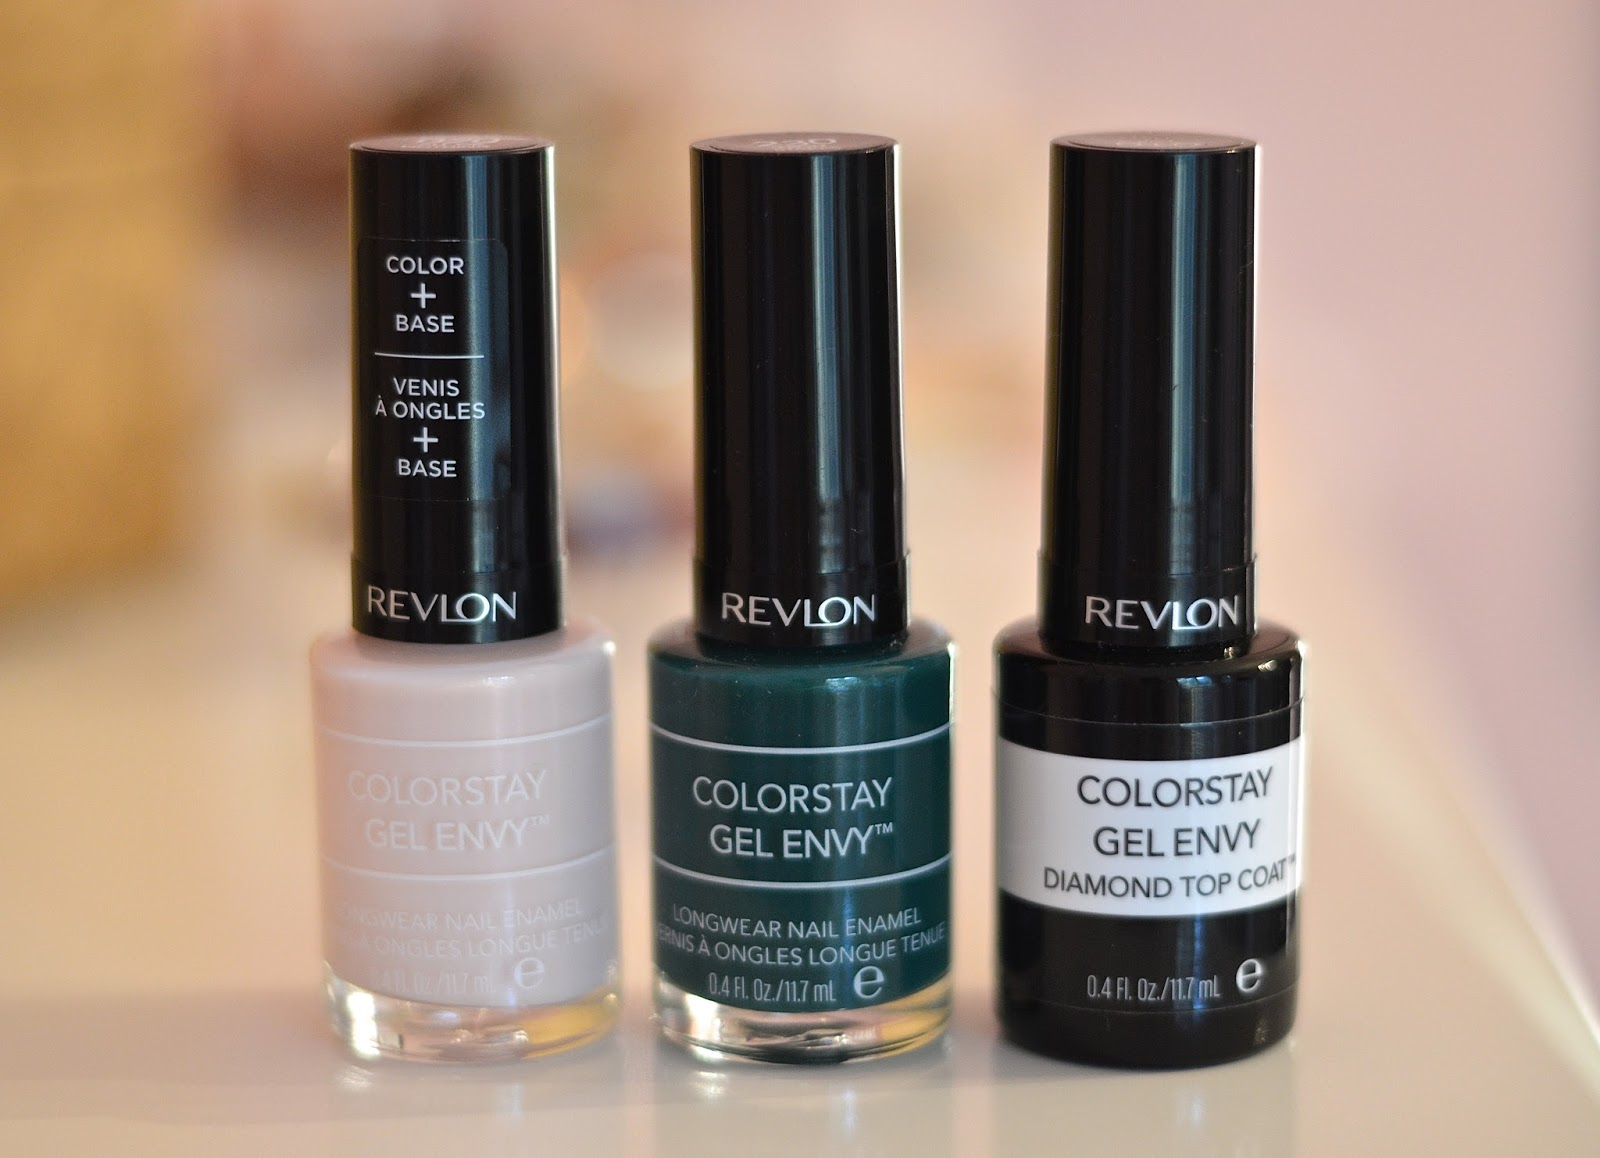 Review Revlon Colorstay Gel Envy Nail Polish Classically Contemporary